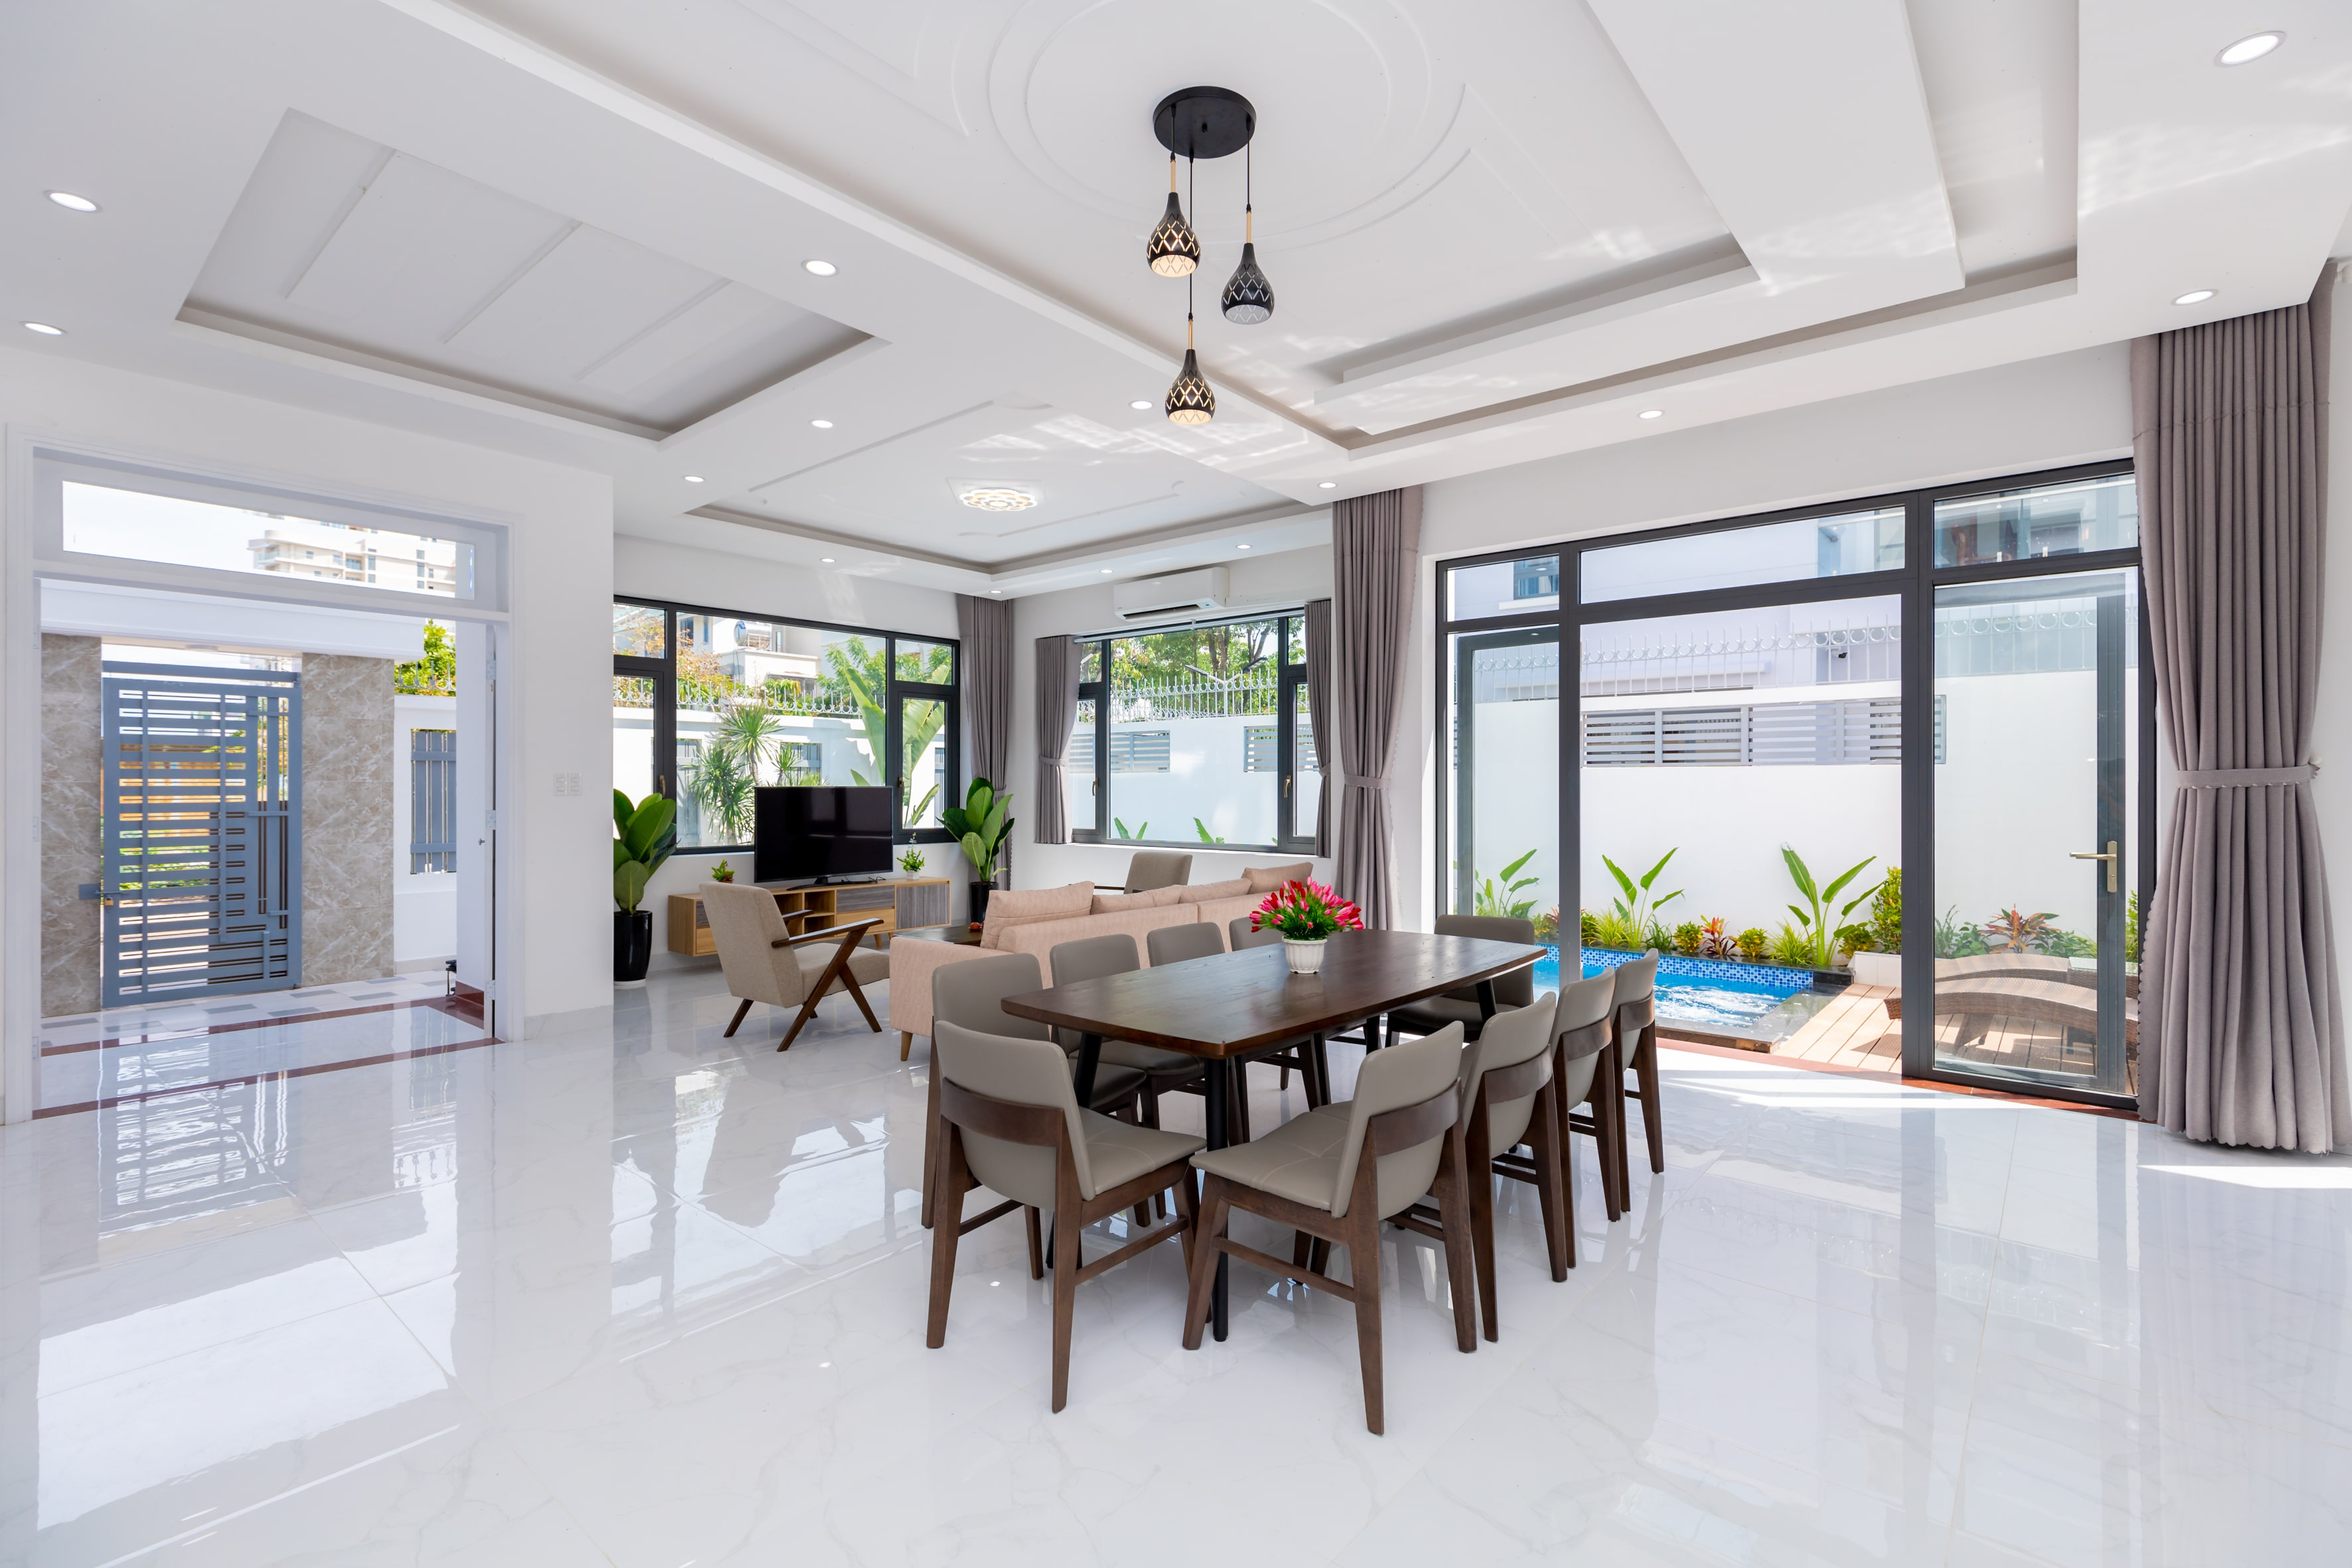 Penthouse Hạ Vy